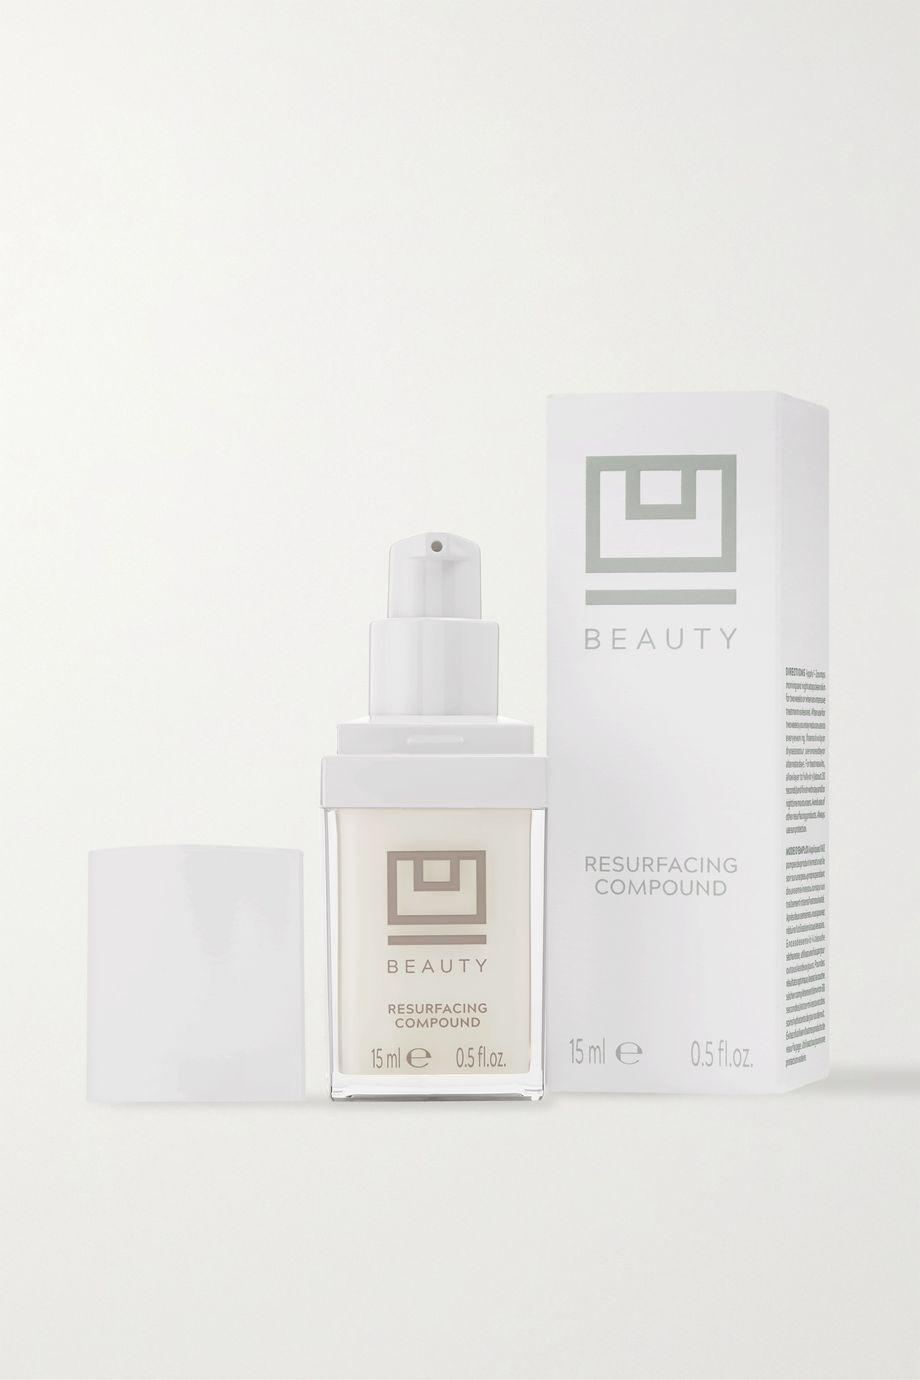 U BEAUTY Resurfacing Compound, 15ml